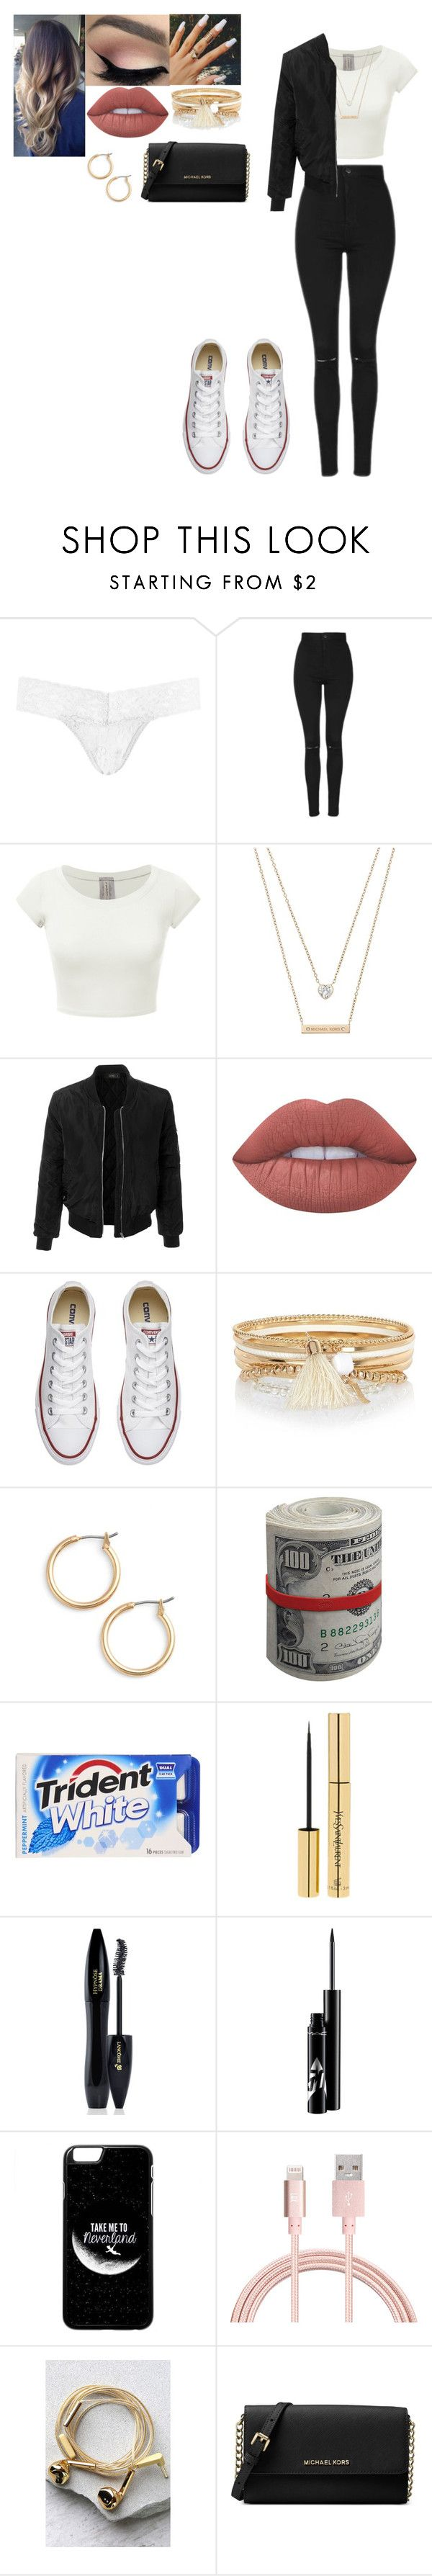 """Going out for pizza"" by love-5secondsofsummer ❤ liked on Polyvore featuring Hanky Panky, Topshop, Michael Kors, LE3NO, Lime Crime, Converse, River Island, Nordstrom, Yves Saint Laurent and Lancôme"